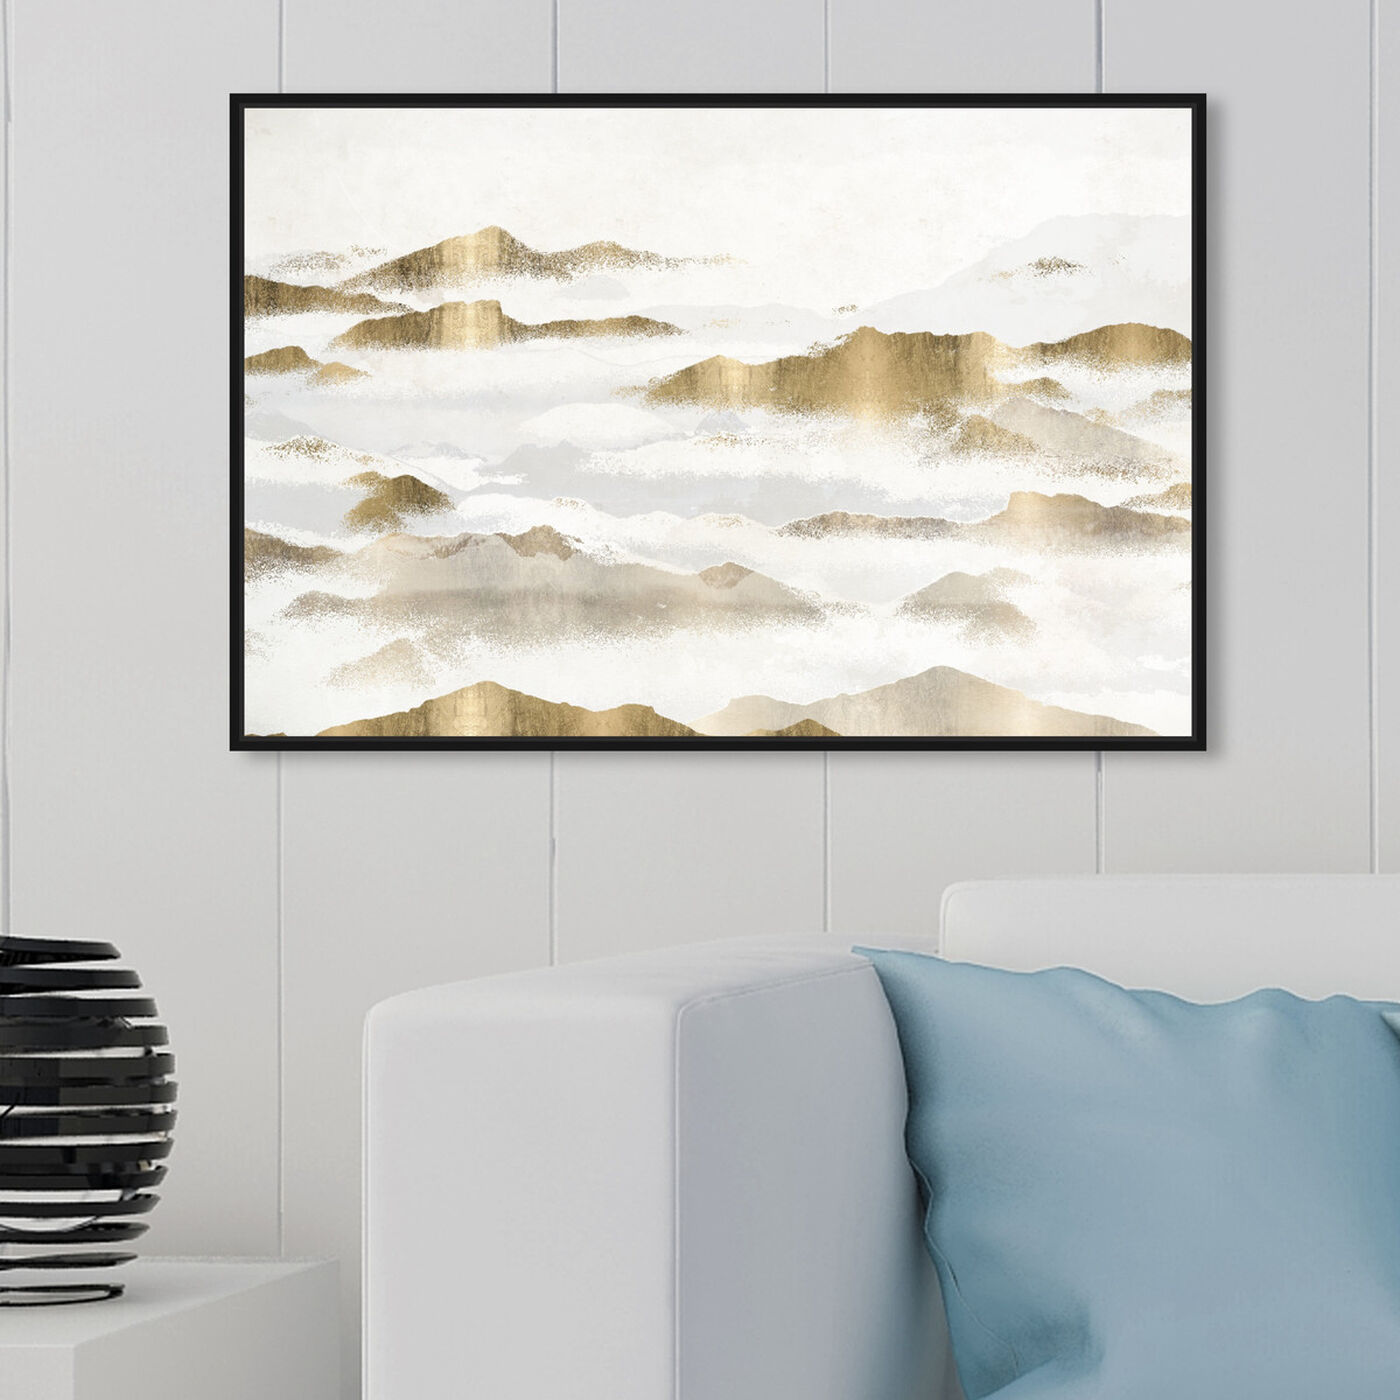 Hanging view of Mountain of the Soul featuring nature and landscape and mountains art.